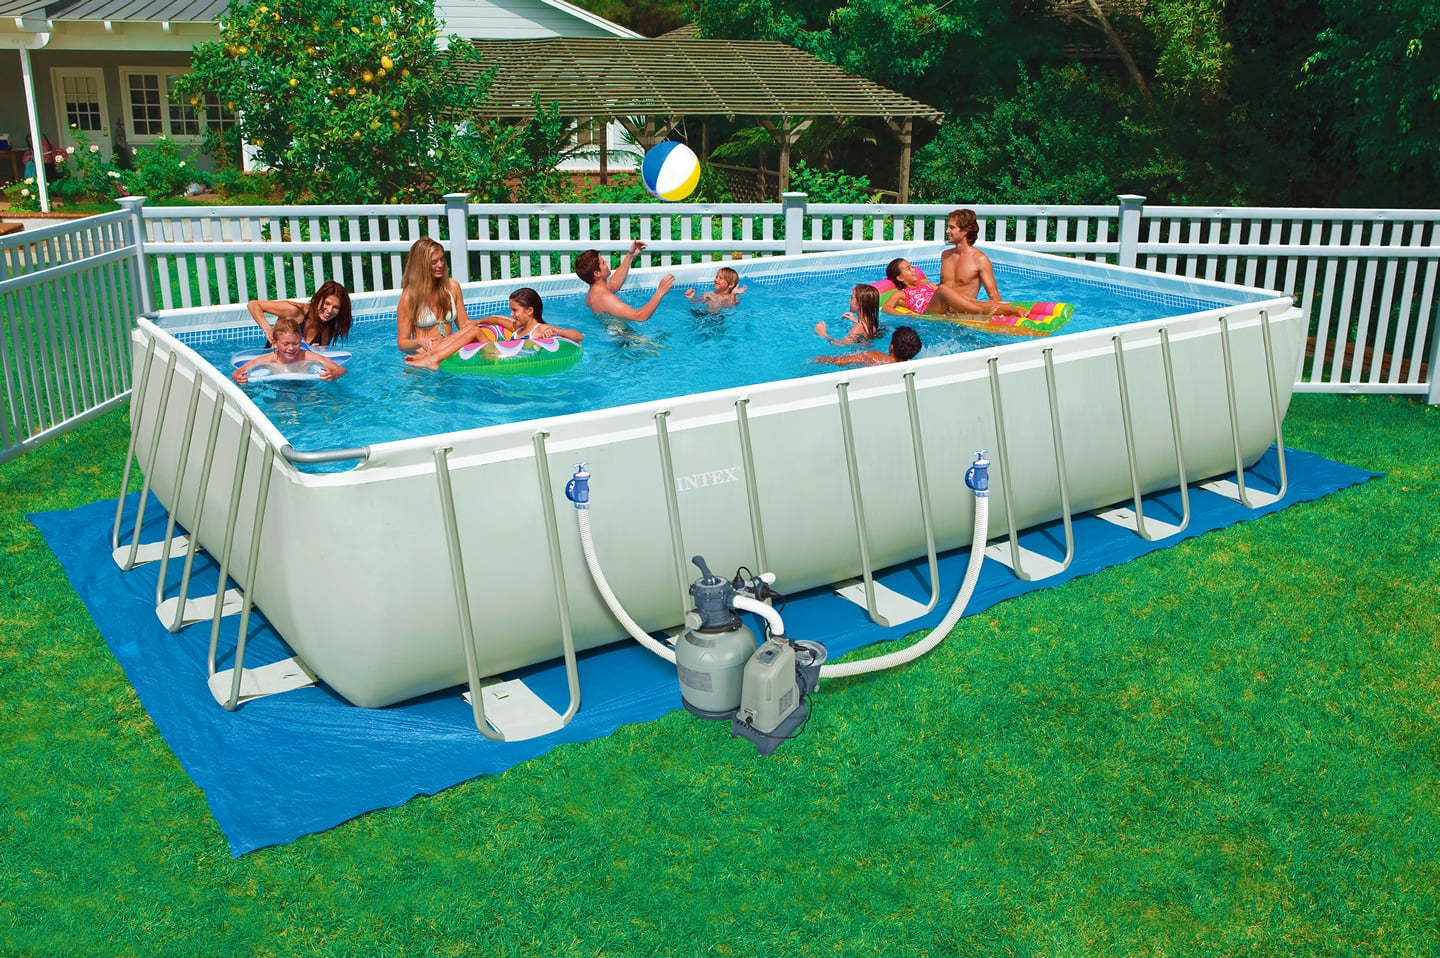 Piscineitalia piscine fuori terra intex 732 for Alberca intex